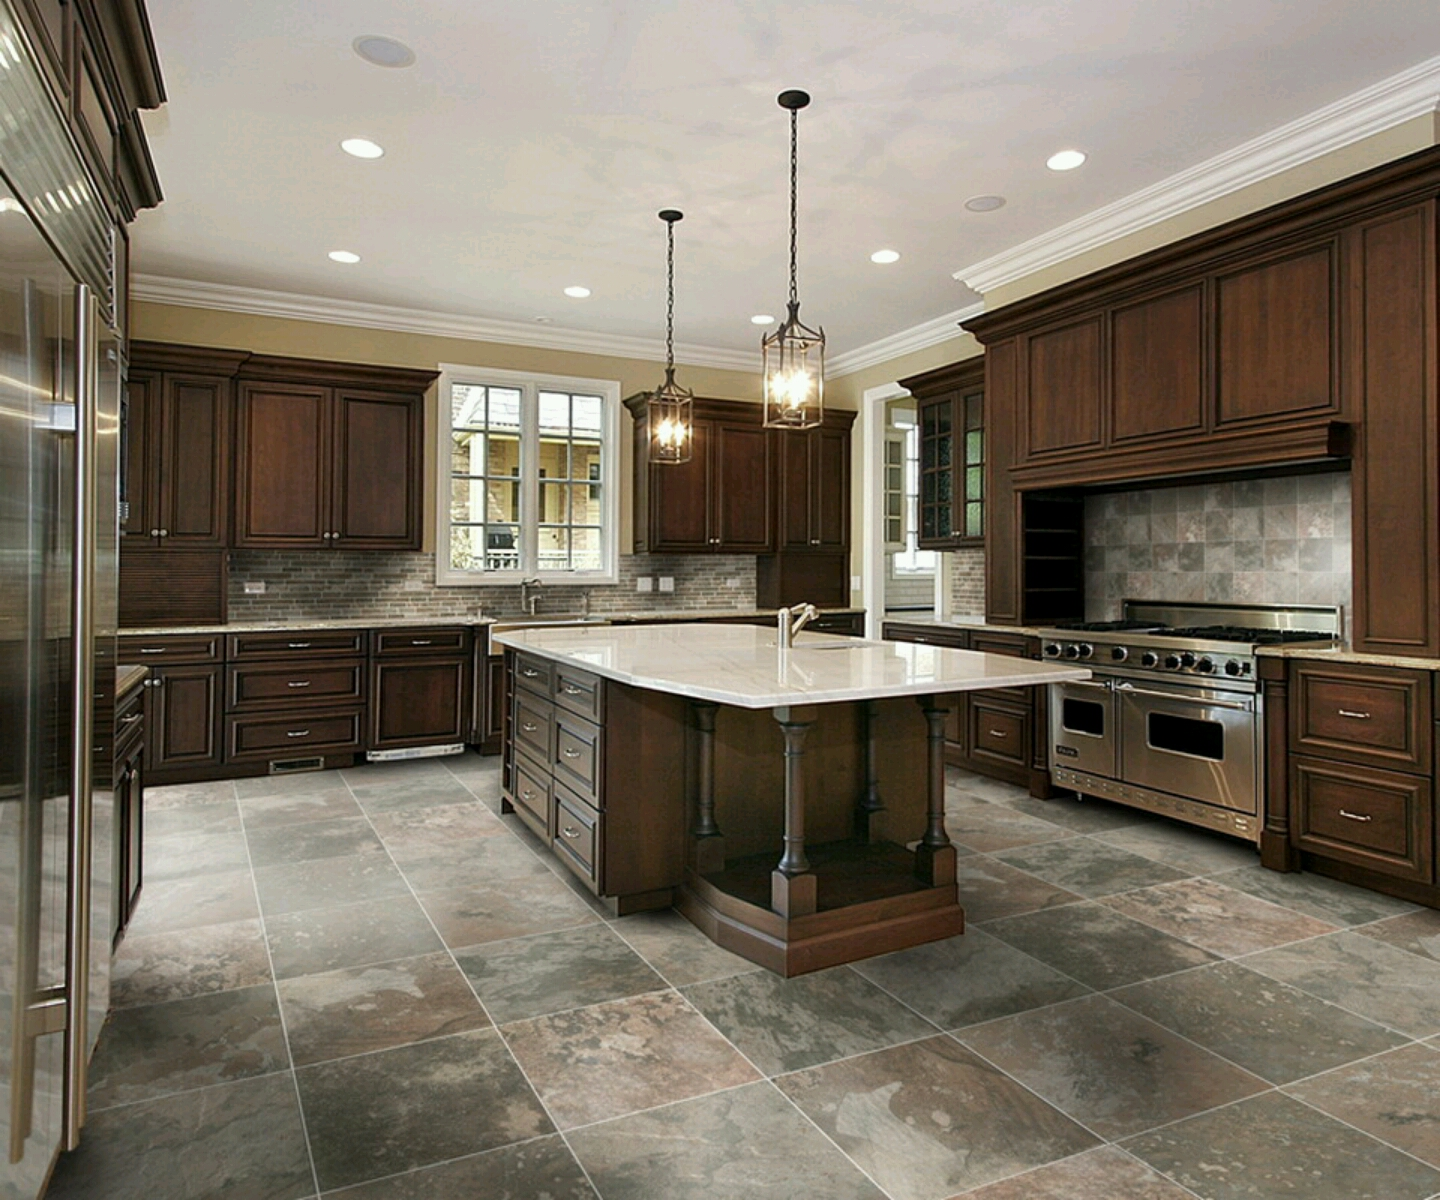 New home designs latest modern kitchen designs ideas for New home flooring